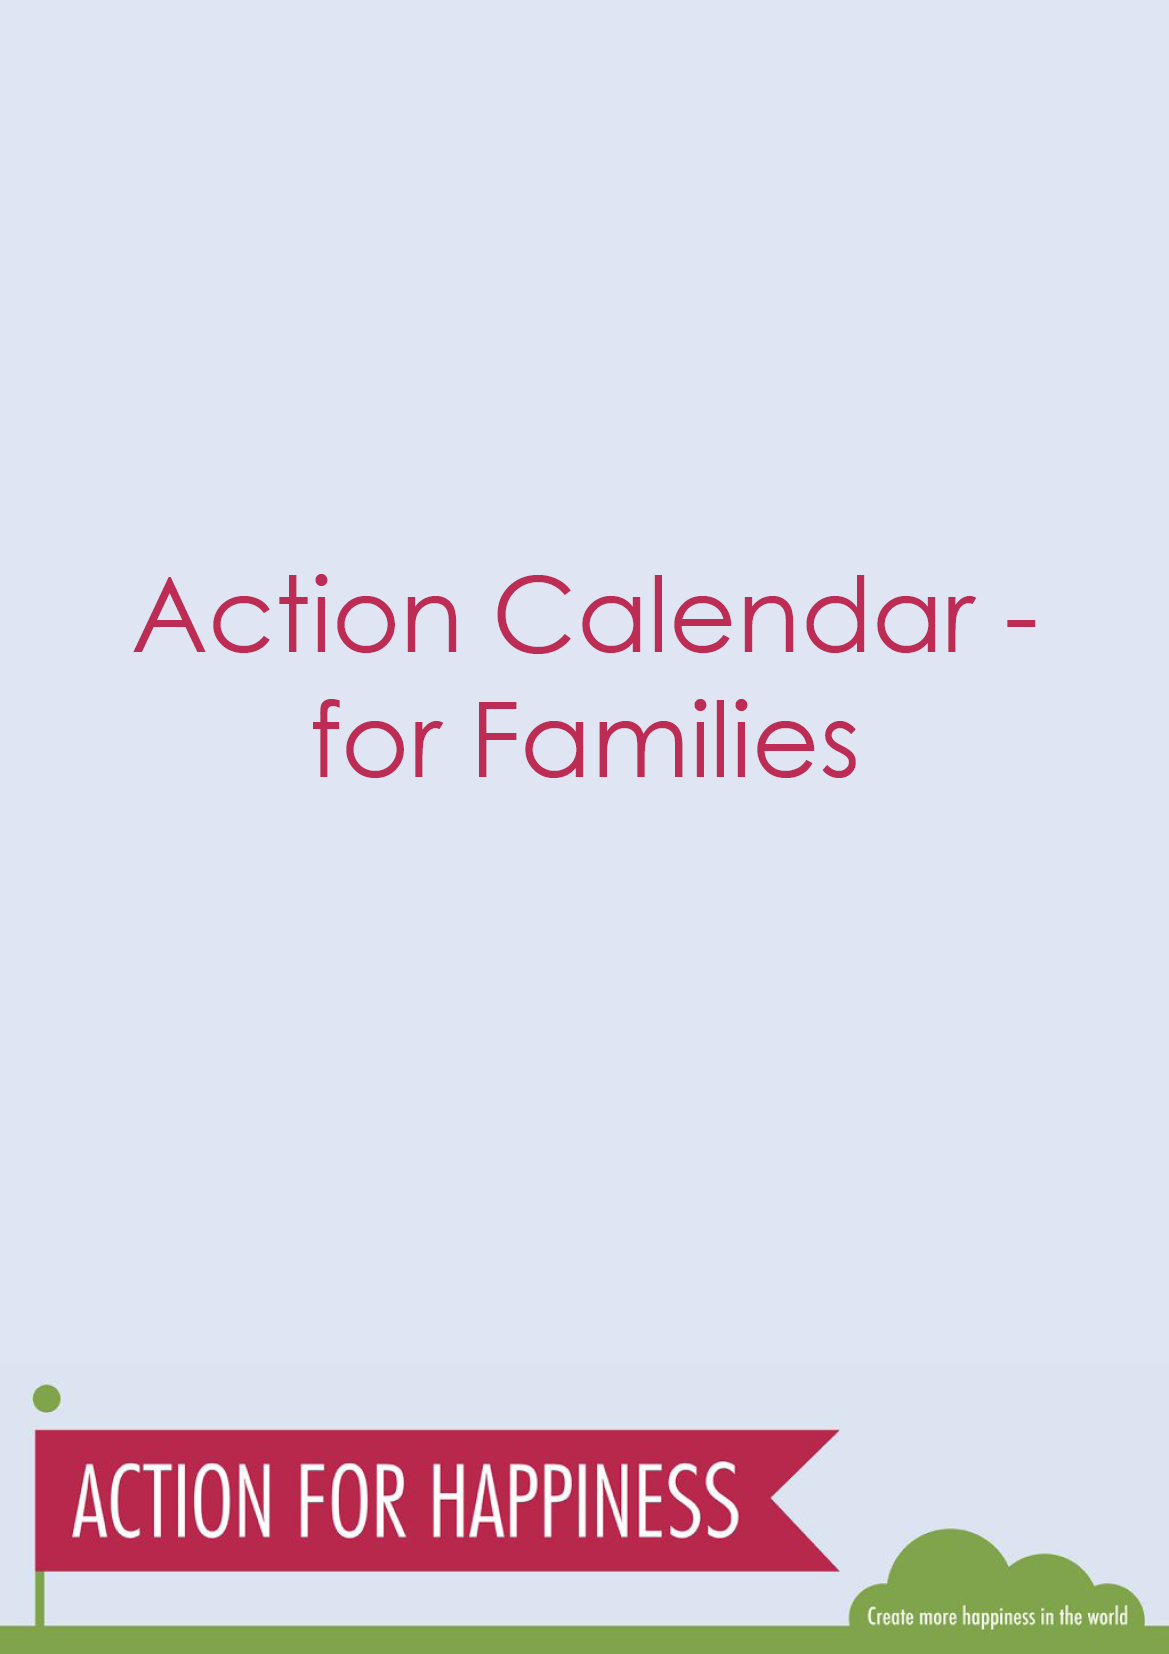 Wellbeing Actions for Families